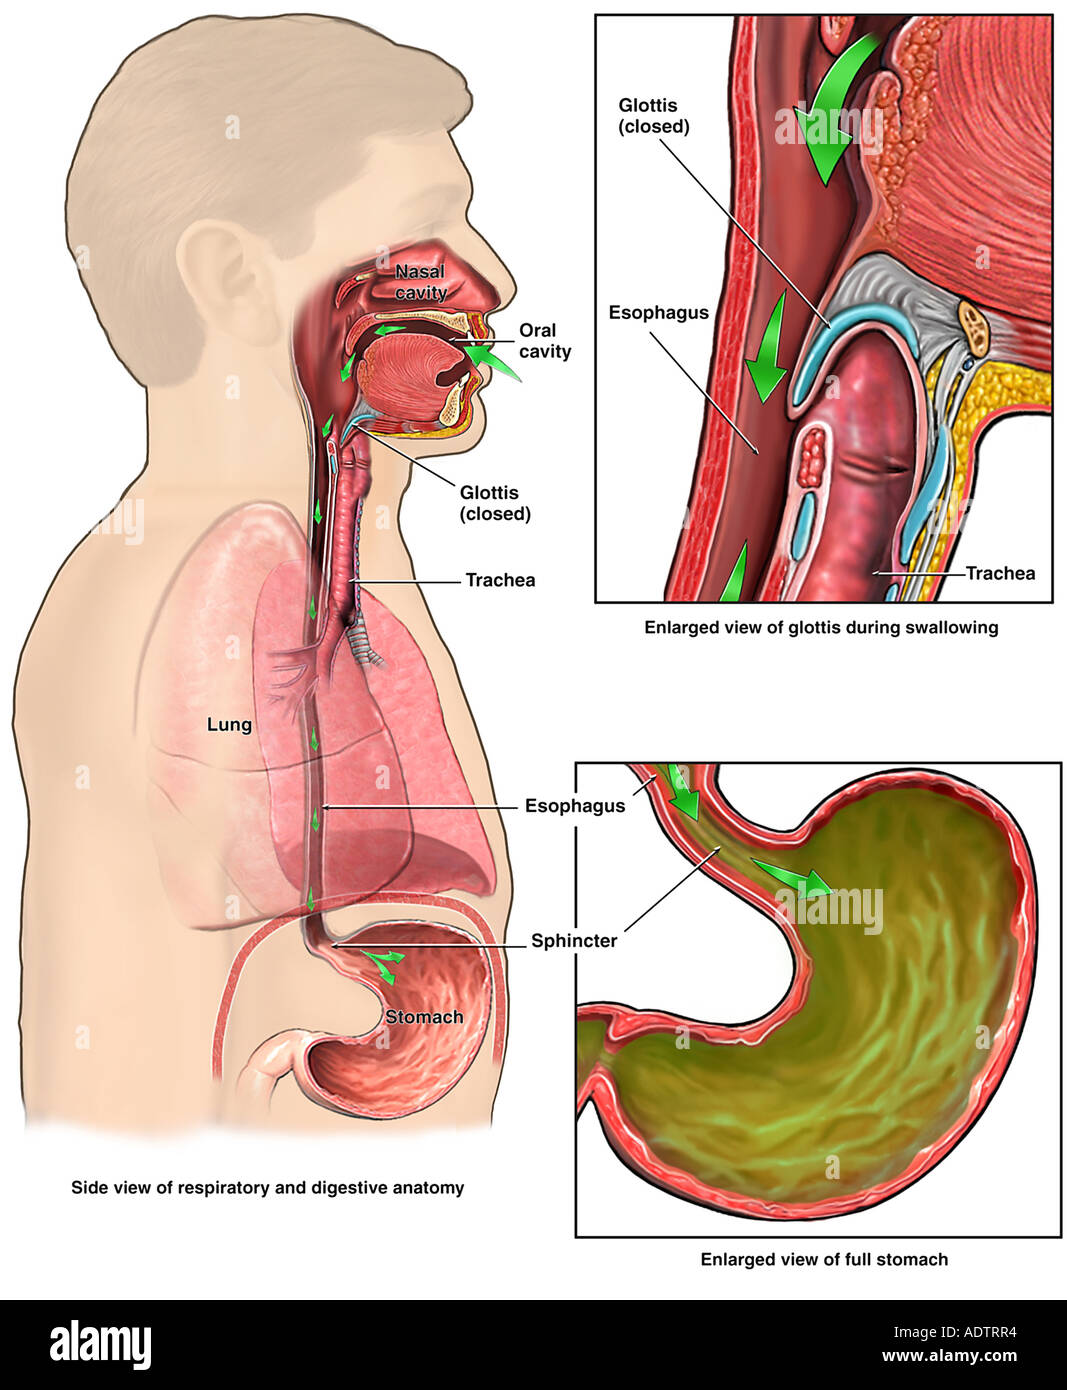 Anatomy of the Upper Digestive System Stock Photo: 7710131 - Alamy